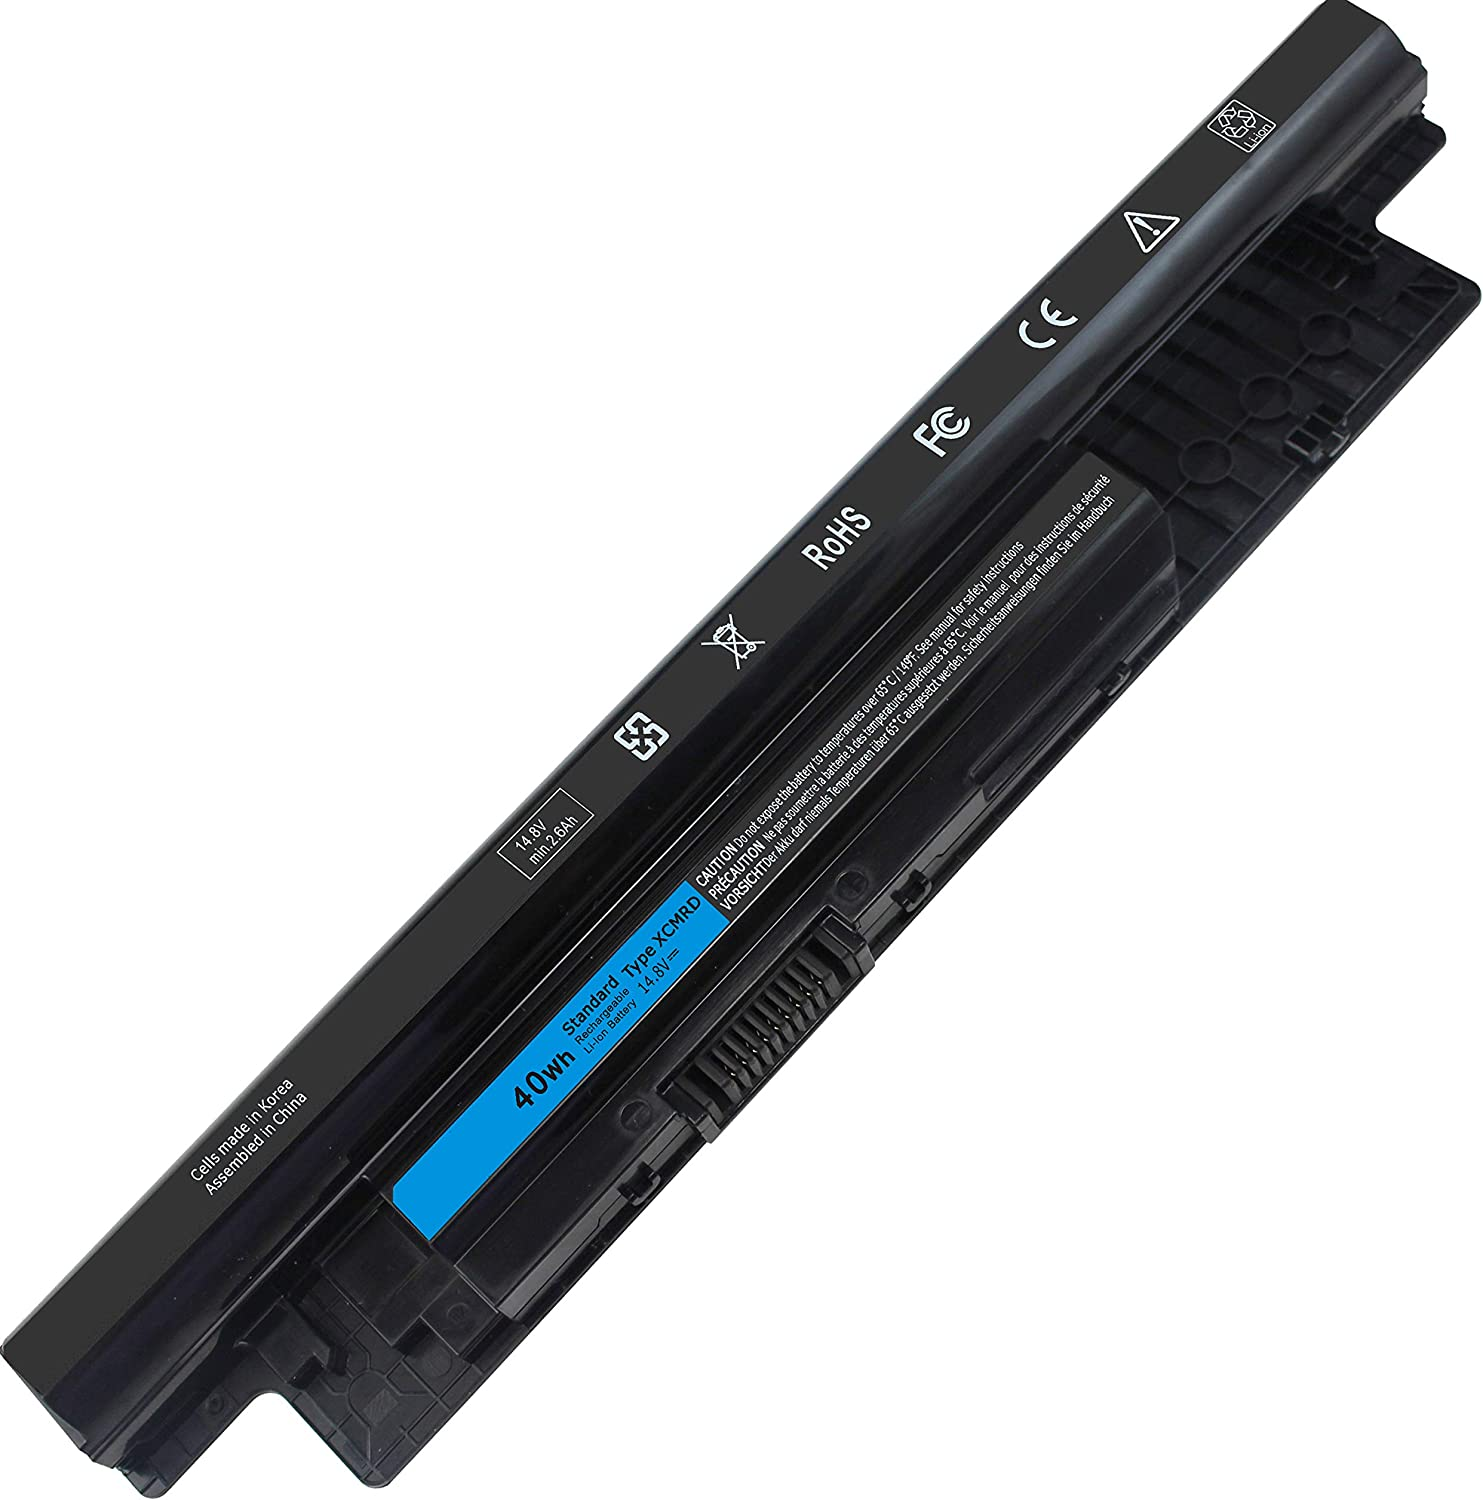 Shareway XCMRD Laptop Battery Compatible with Dell Inspiron 17R 5737 5721 17 3721 3737 15R 5537 5521 15 3521 14R 5421 5437 14 3421 Vostro 2421 2521 P/N: MR90Y 0MF69 VR7HM